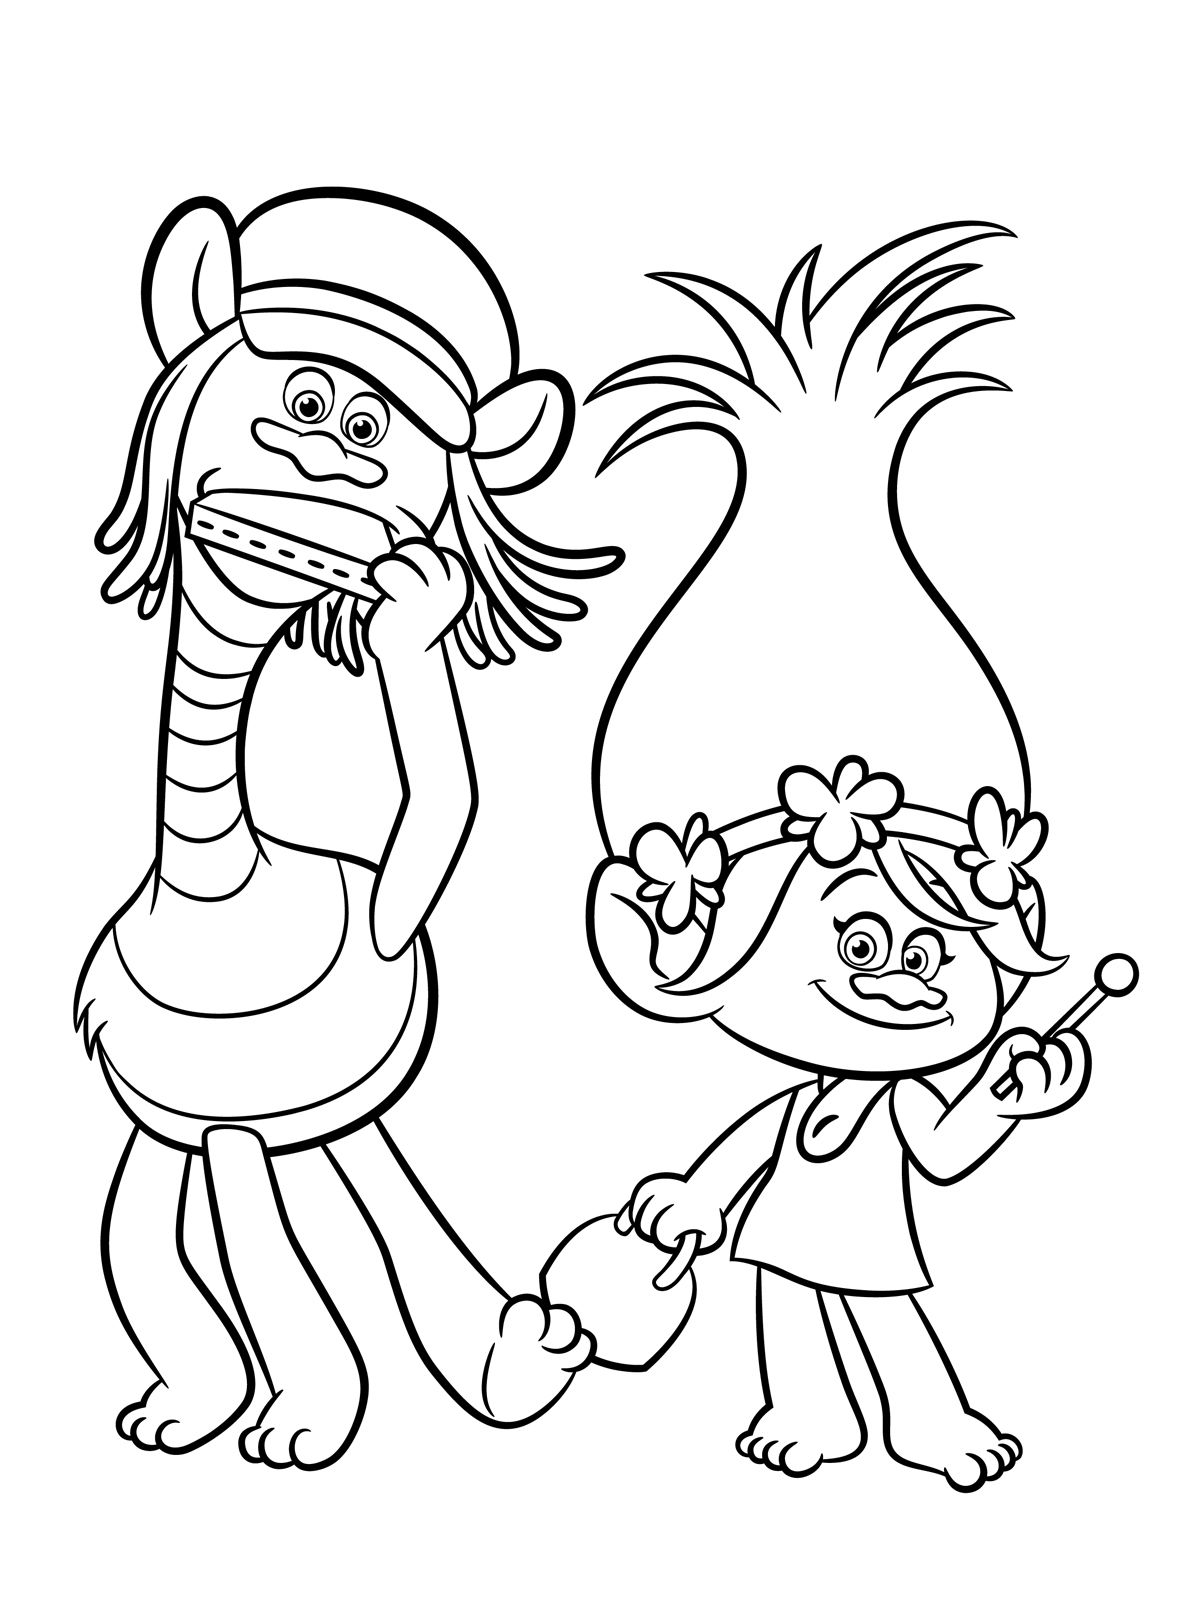 coloring pictures for kids bunny coloring pages best coloring pages for kids coloring for kids pictures